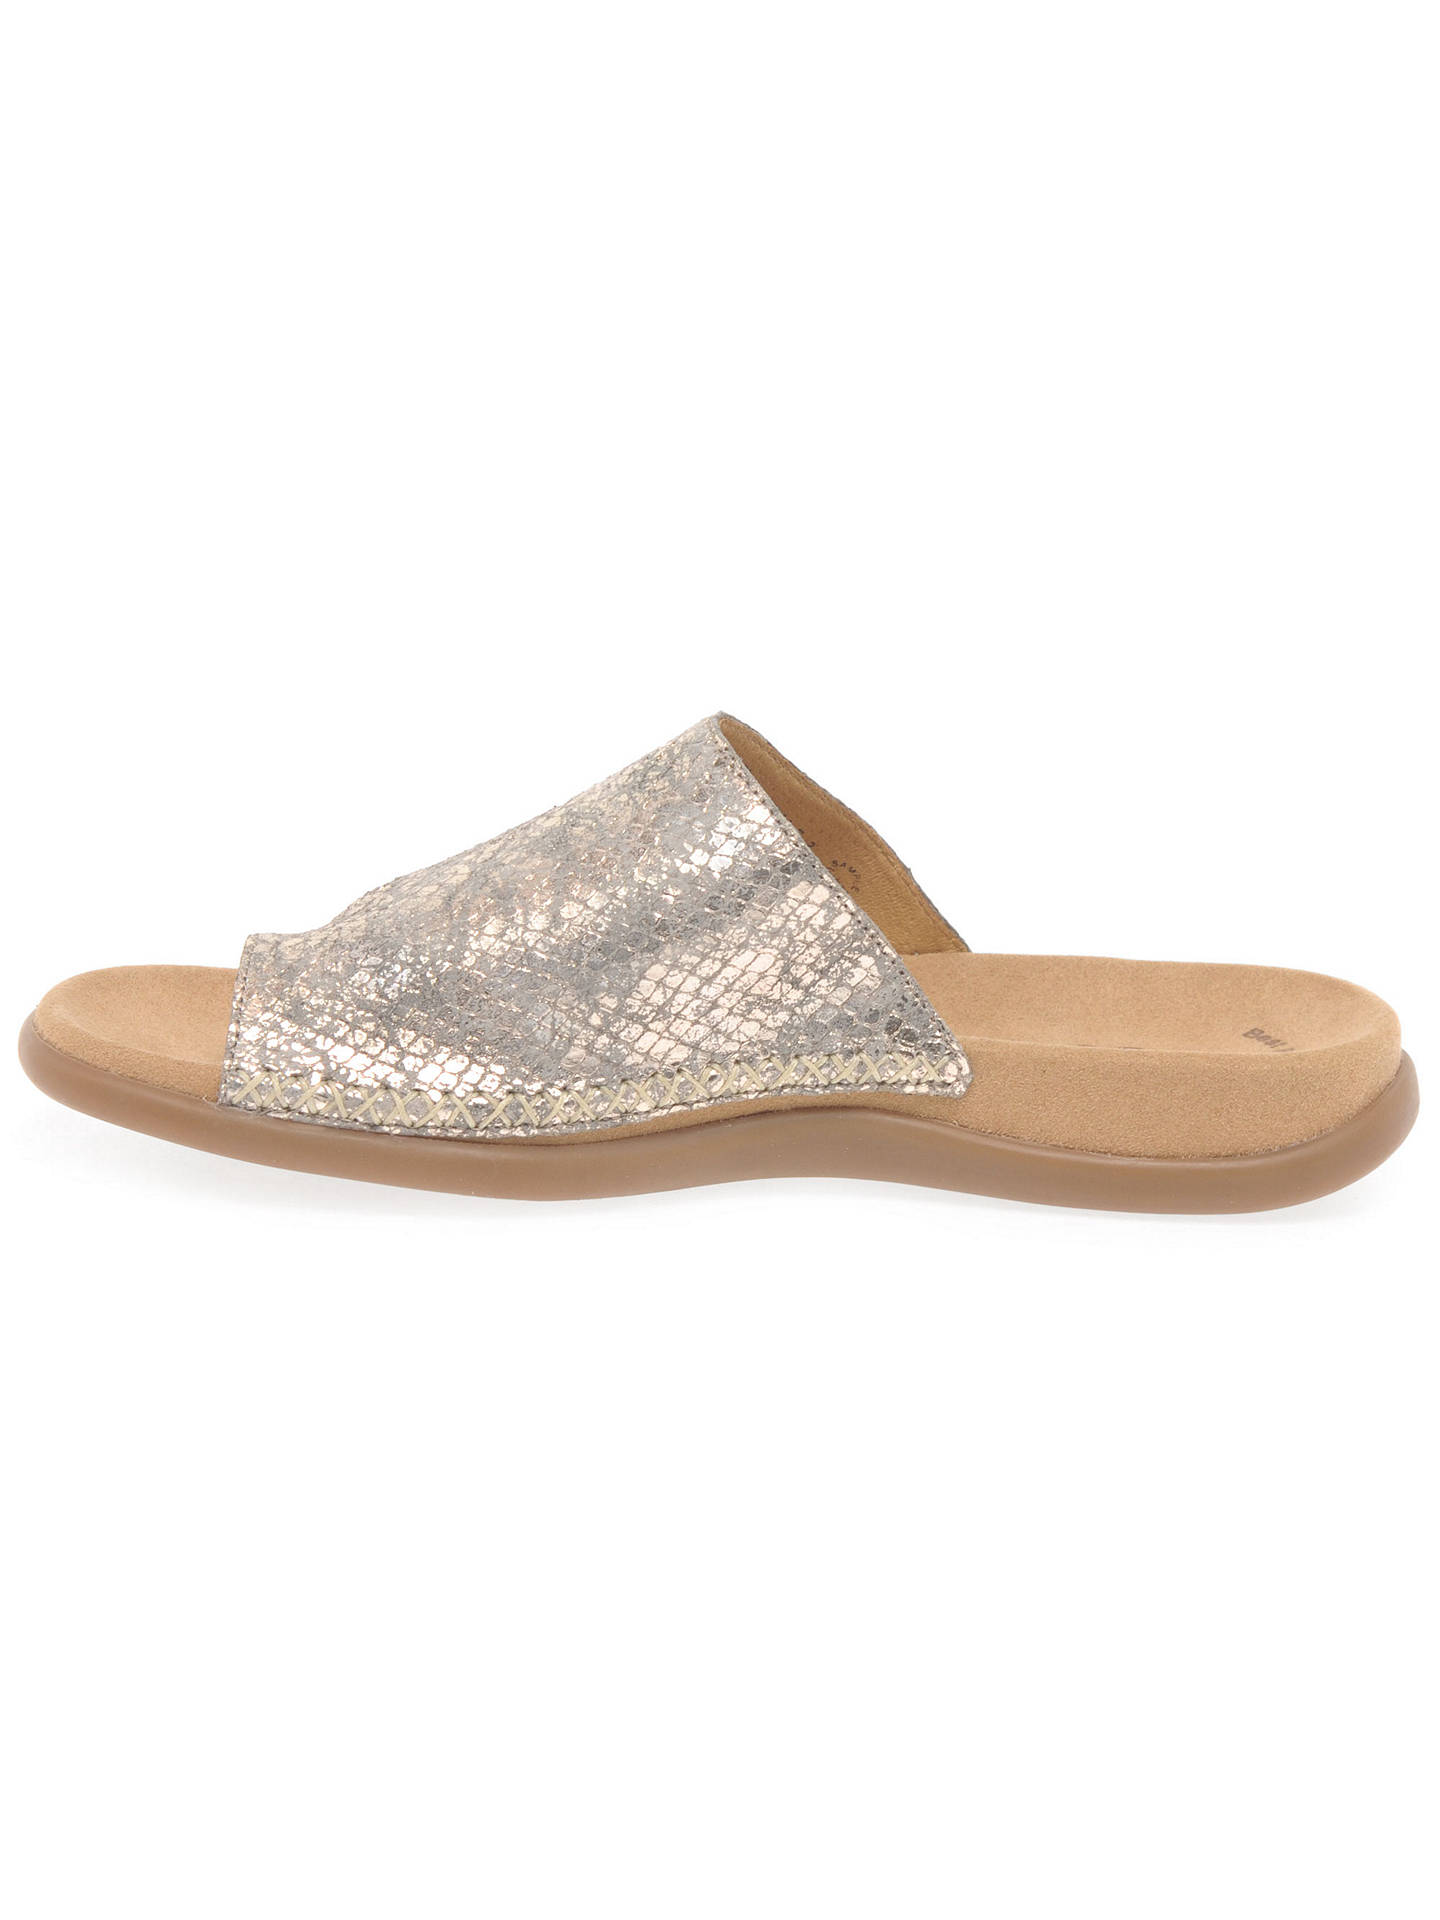 meet 67f33 9579d Gabor Lanzarote Slip On Sandals at John Lewis & Partners